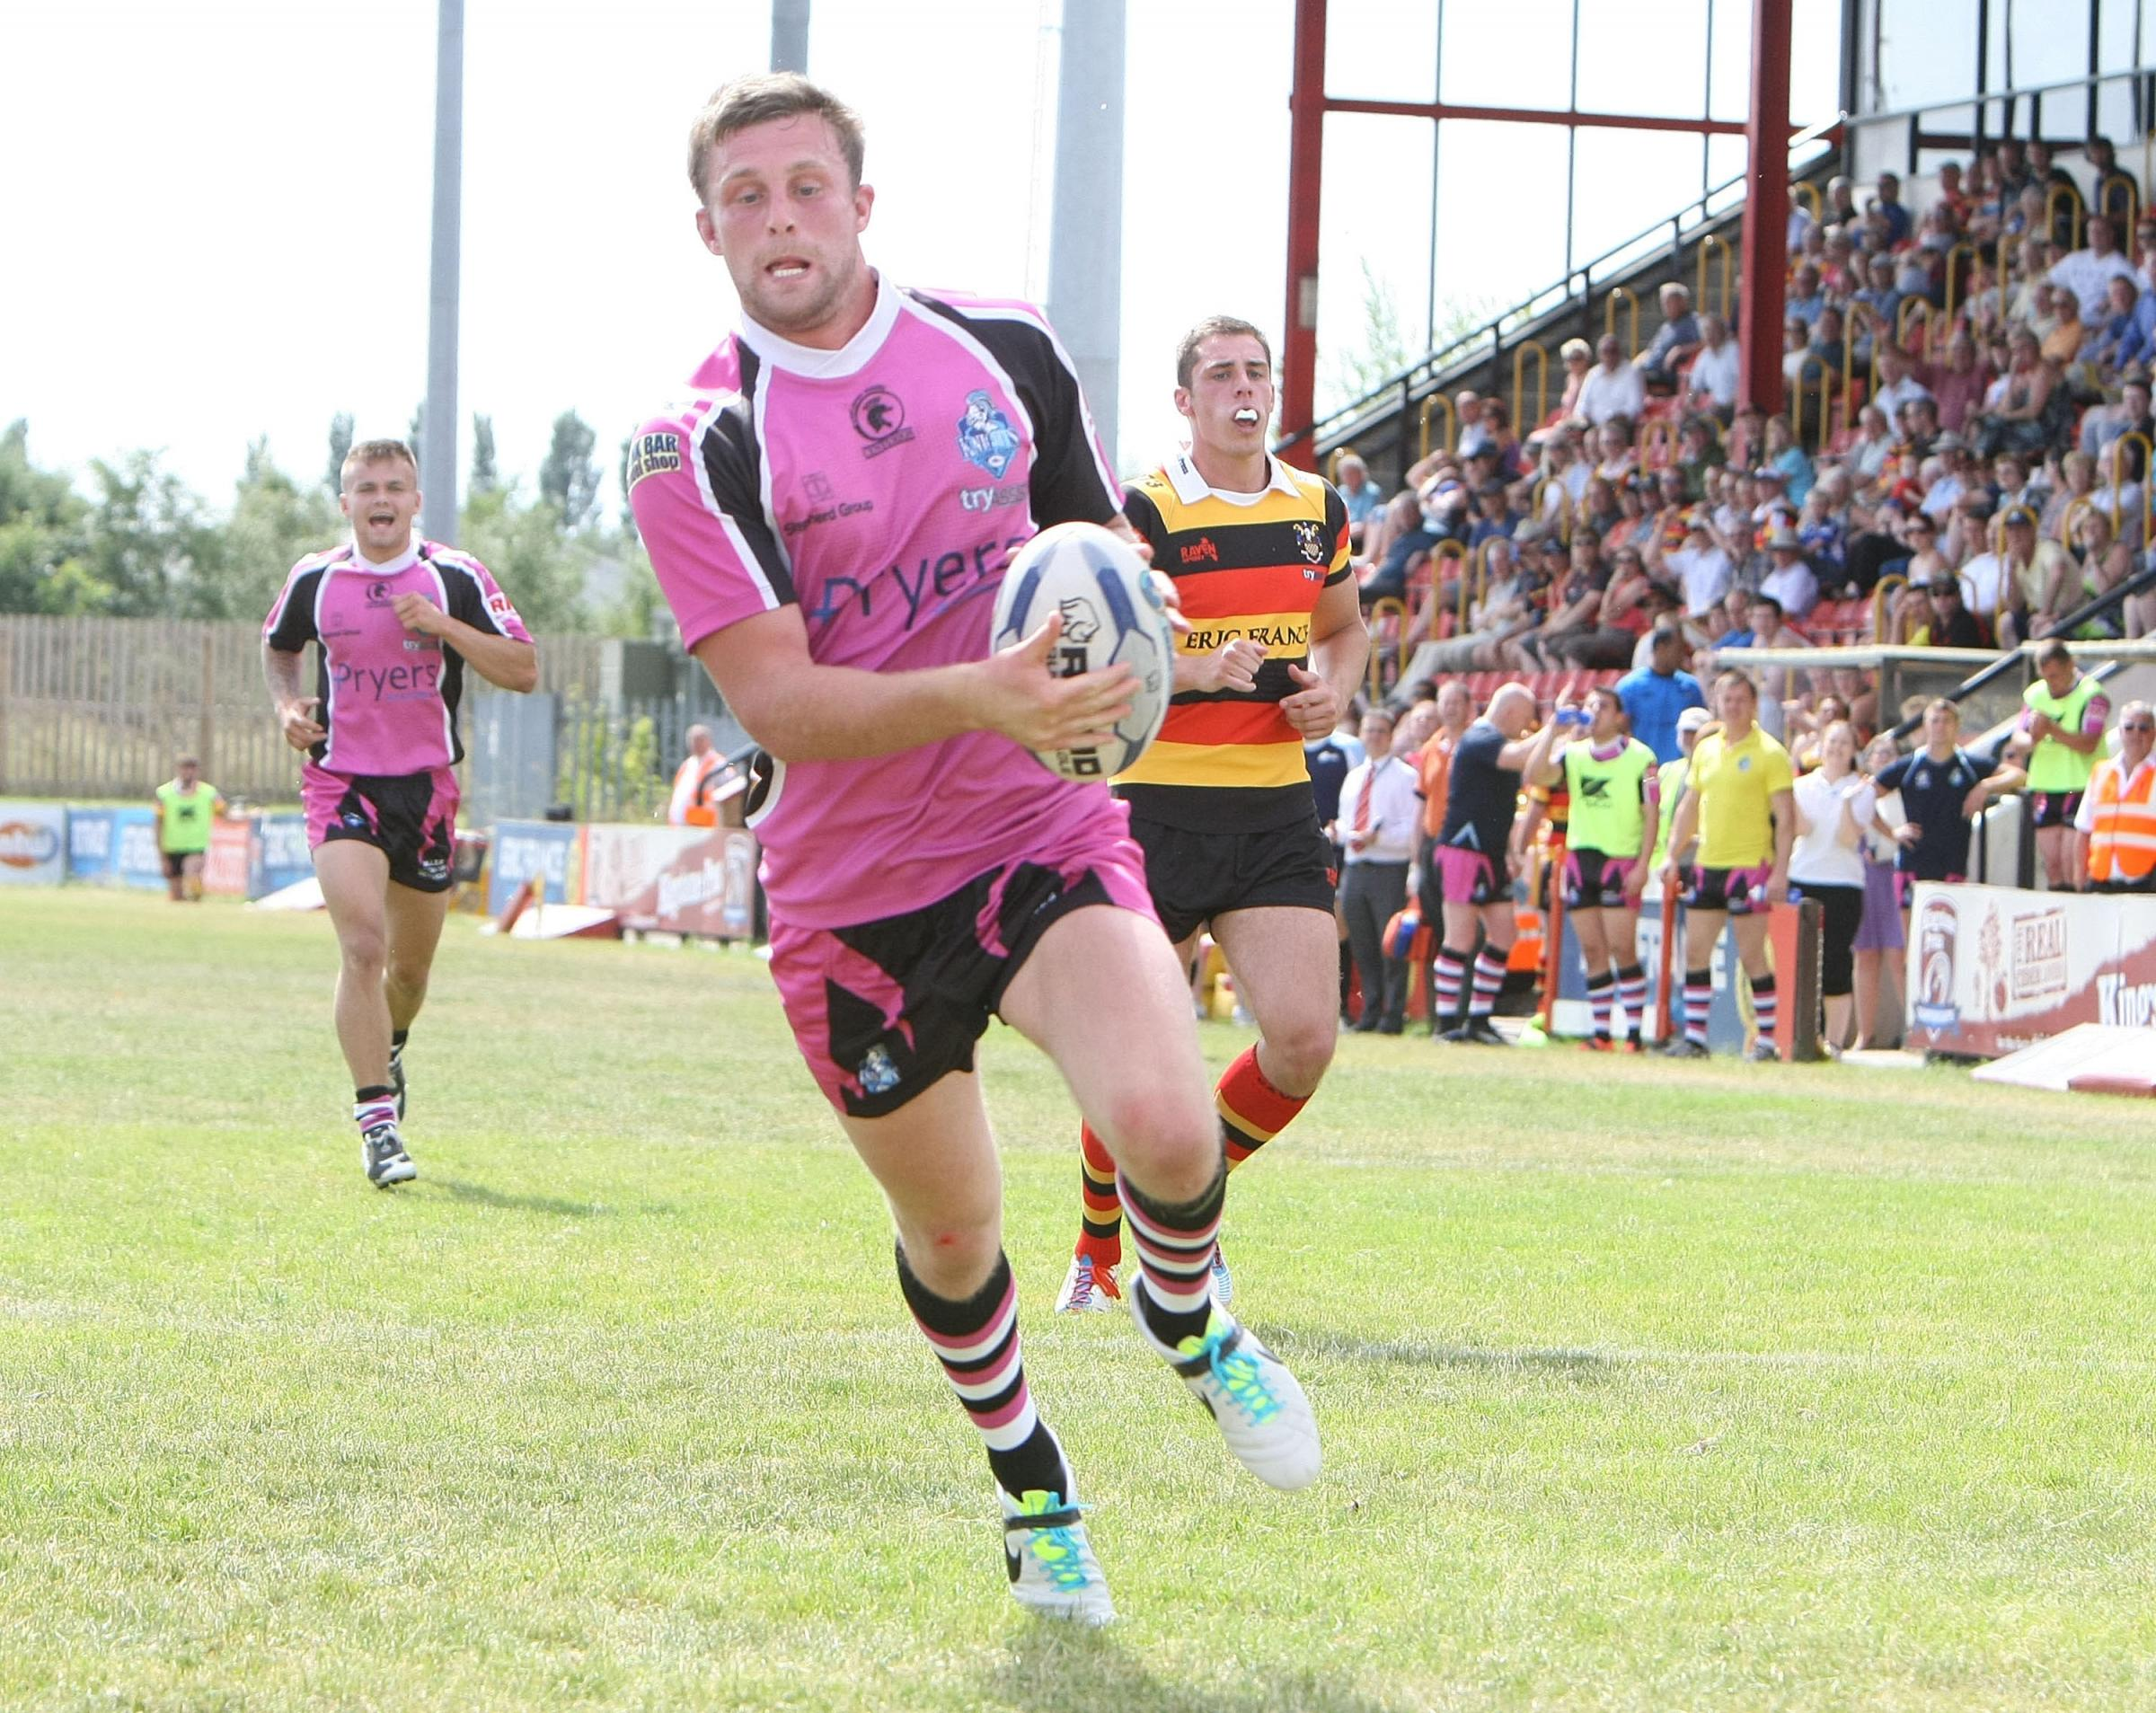 RETURNING? Sam Scott scores for York City Knights in the Championship match at Dewsbury Rams in 2013